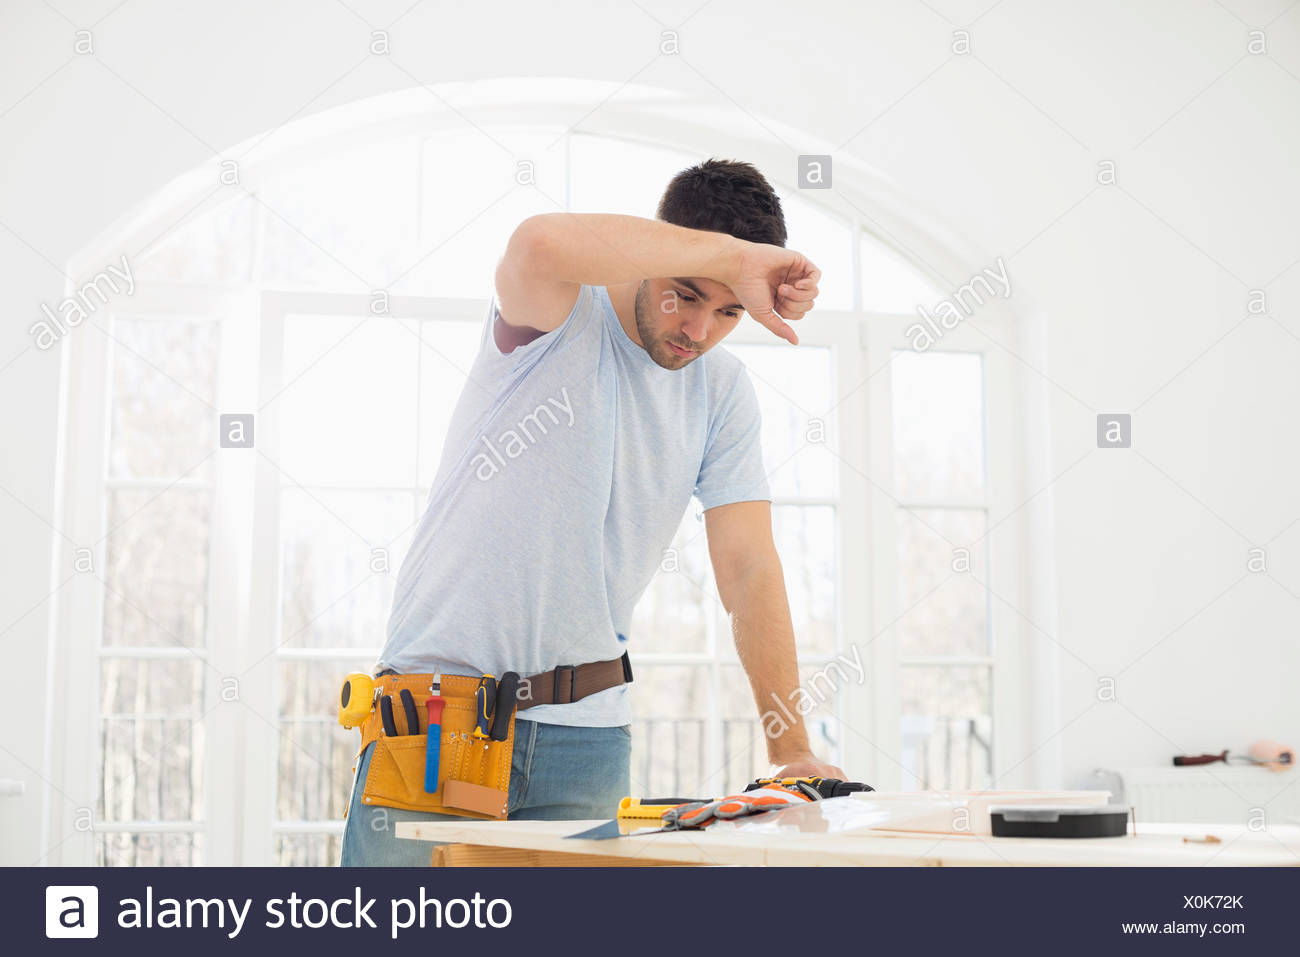 Mid-adult carpenter wiping his brow in new house - Stock Image